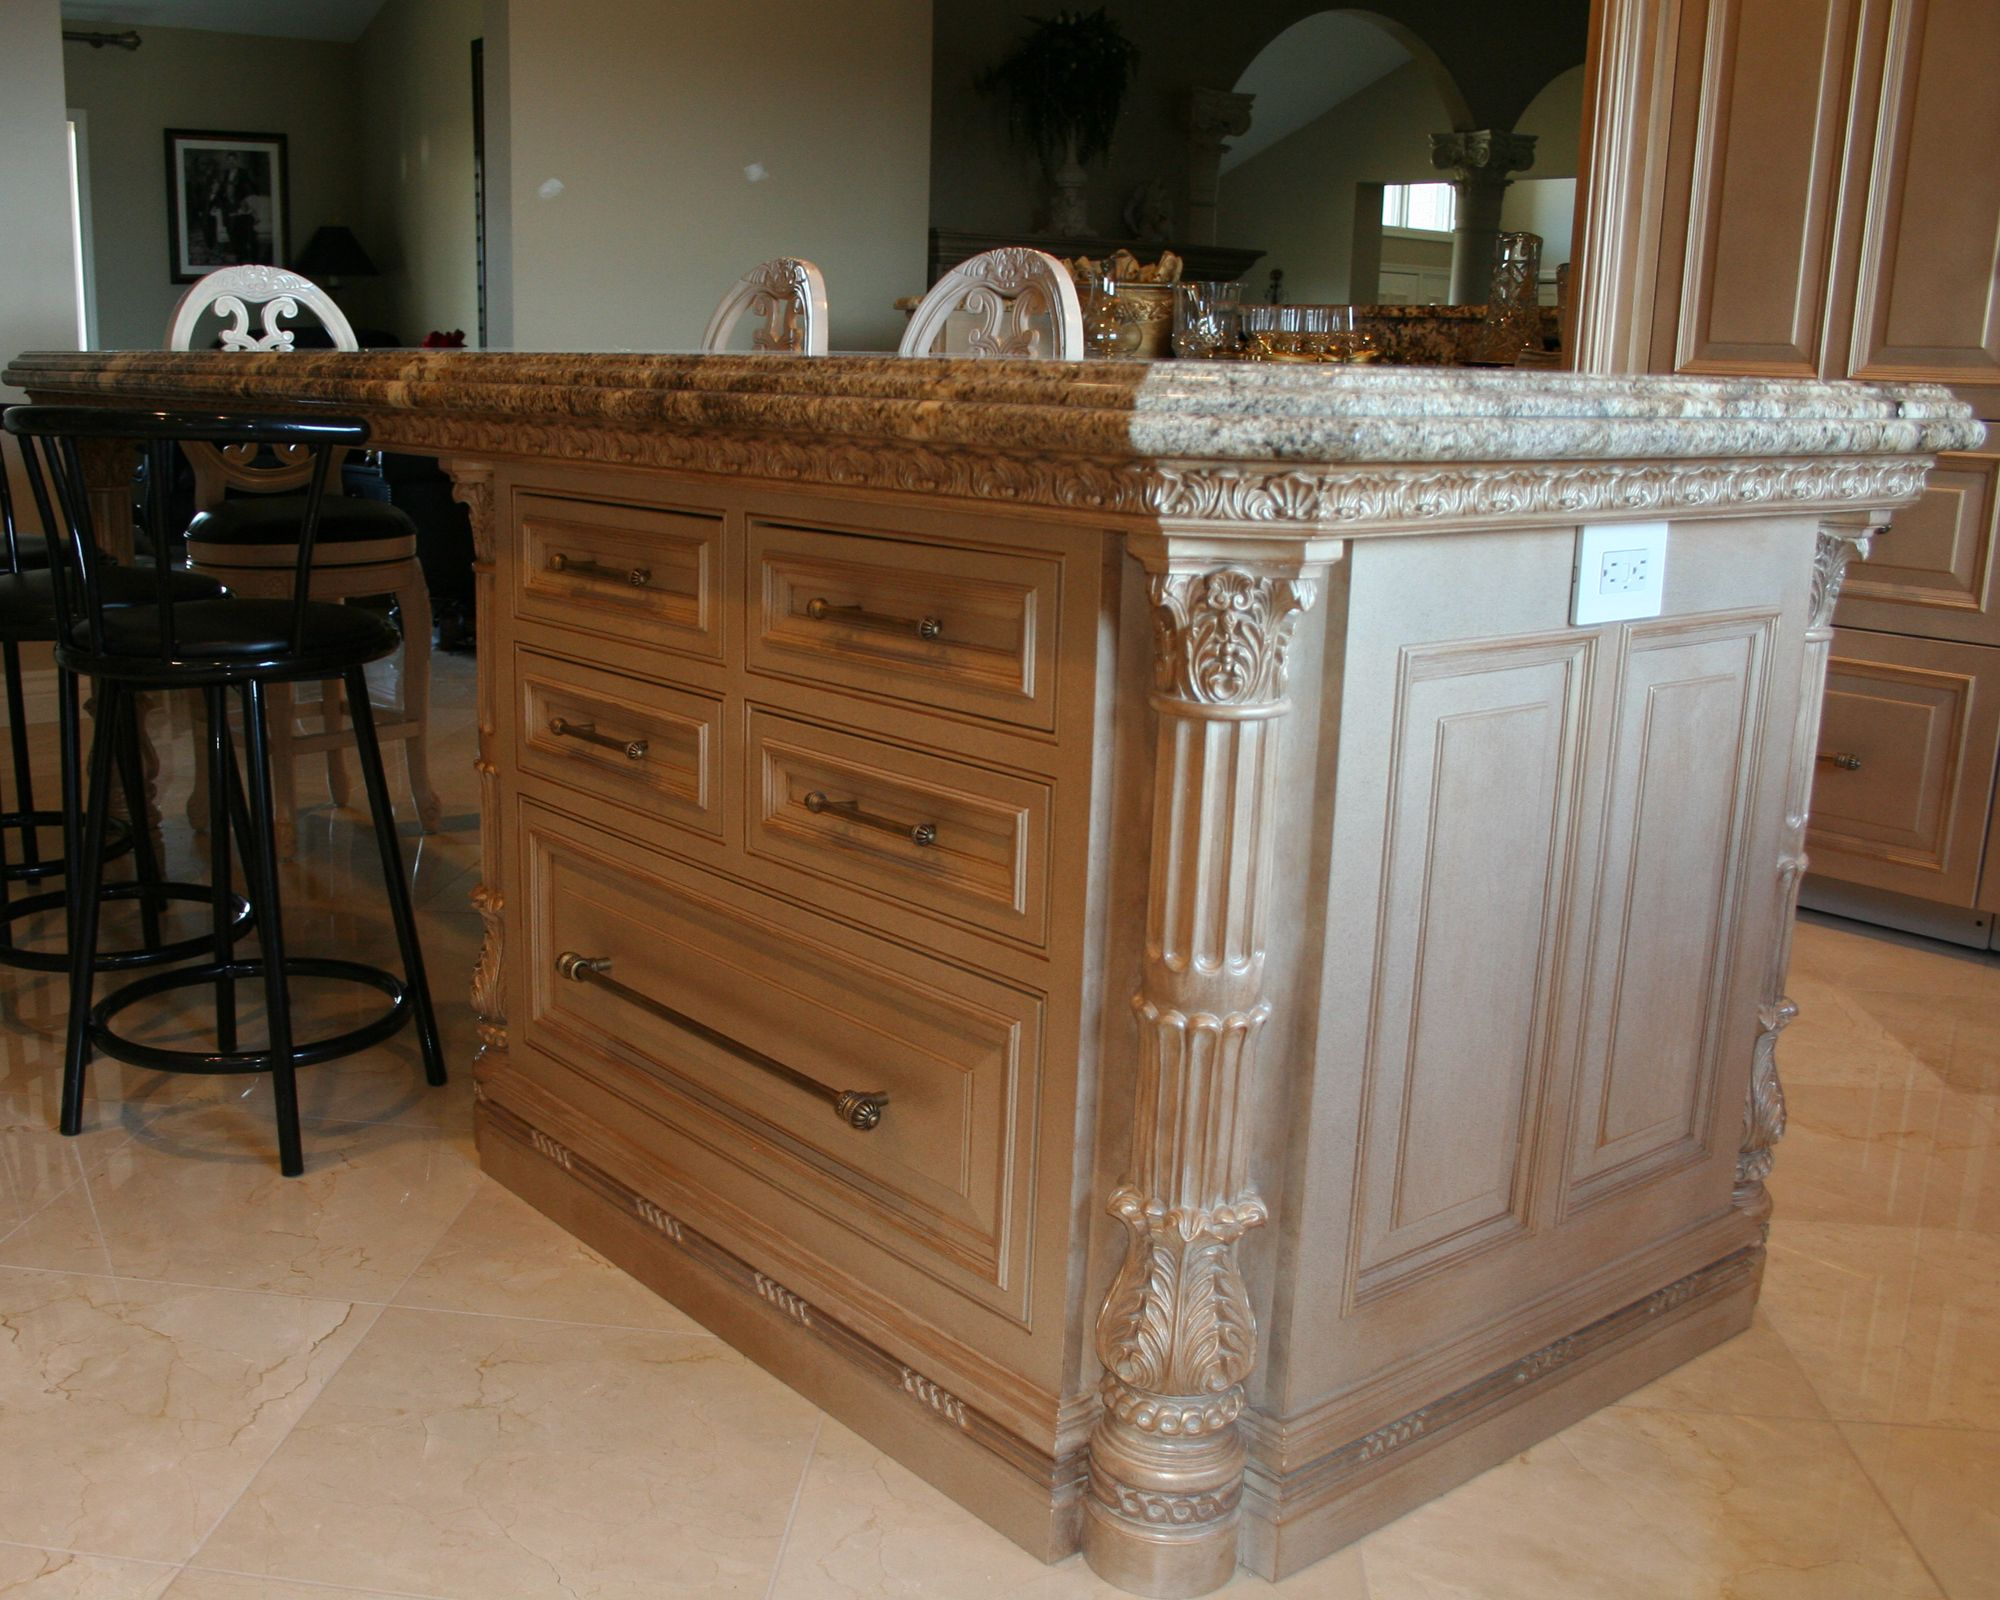 ornate kitchen cabinets Island Cabinet